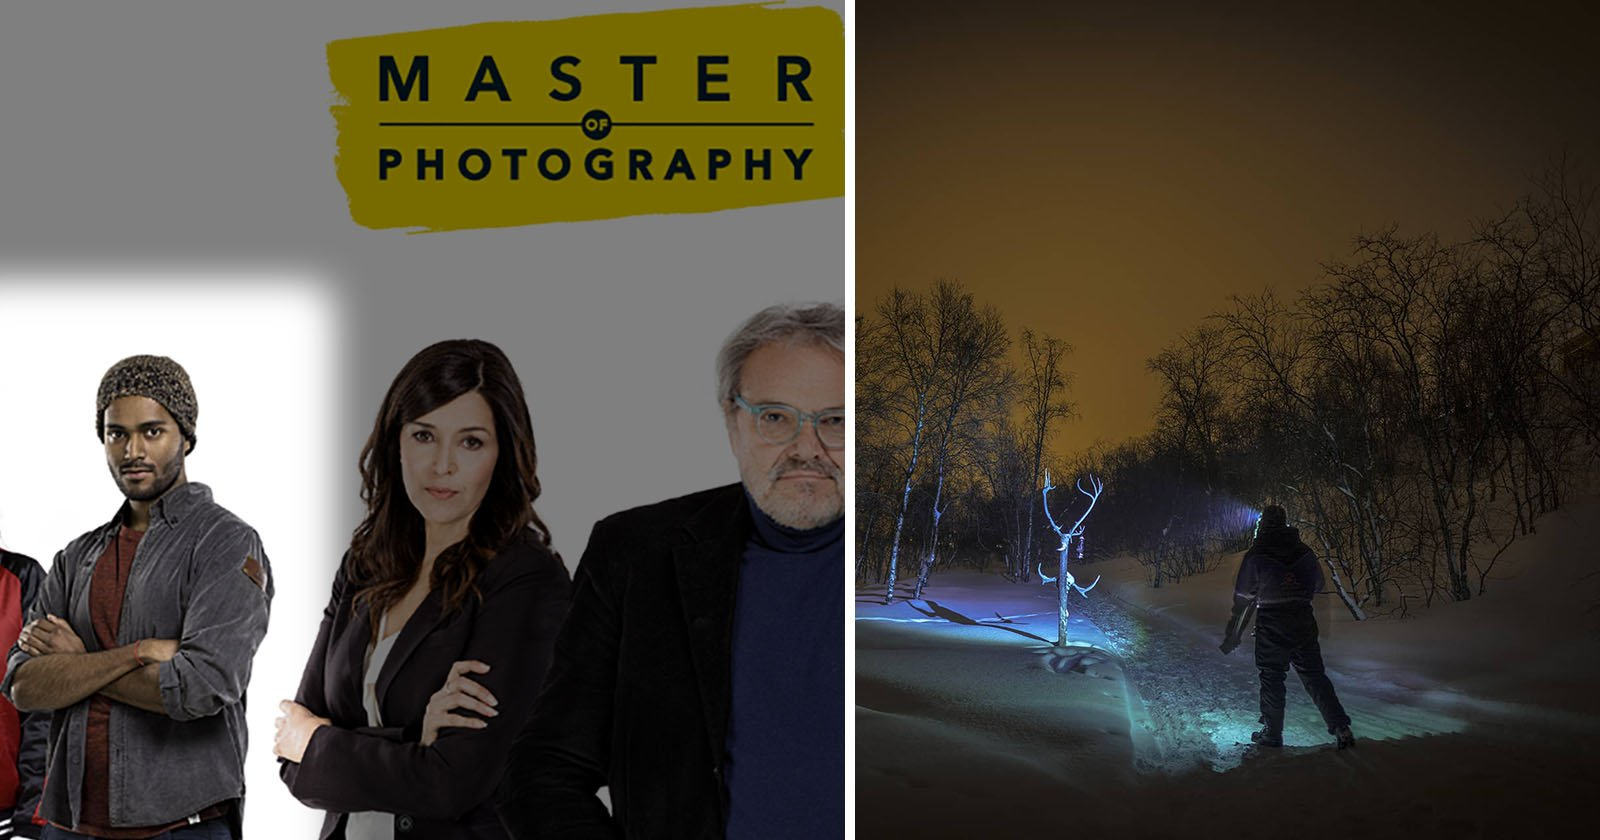 Souvid Datta Caught Staging Photo in 'Master of Photography' Finals